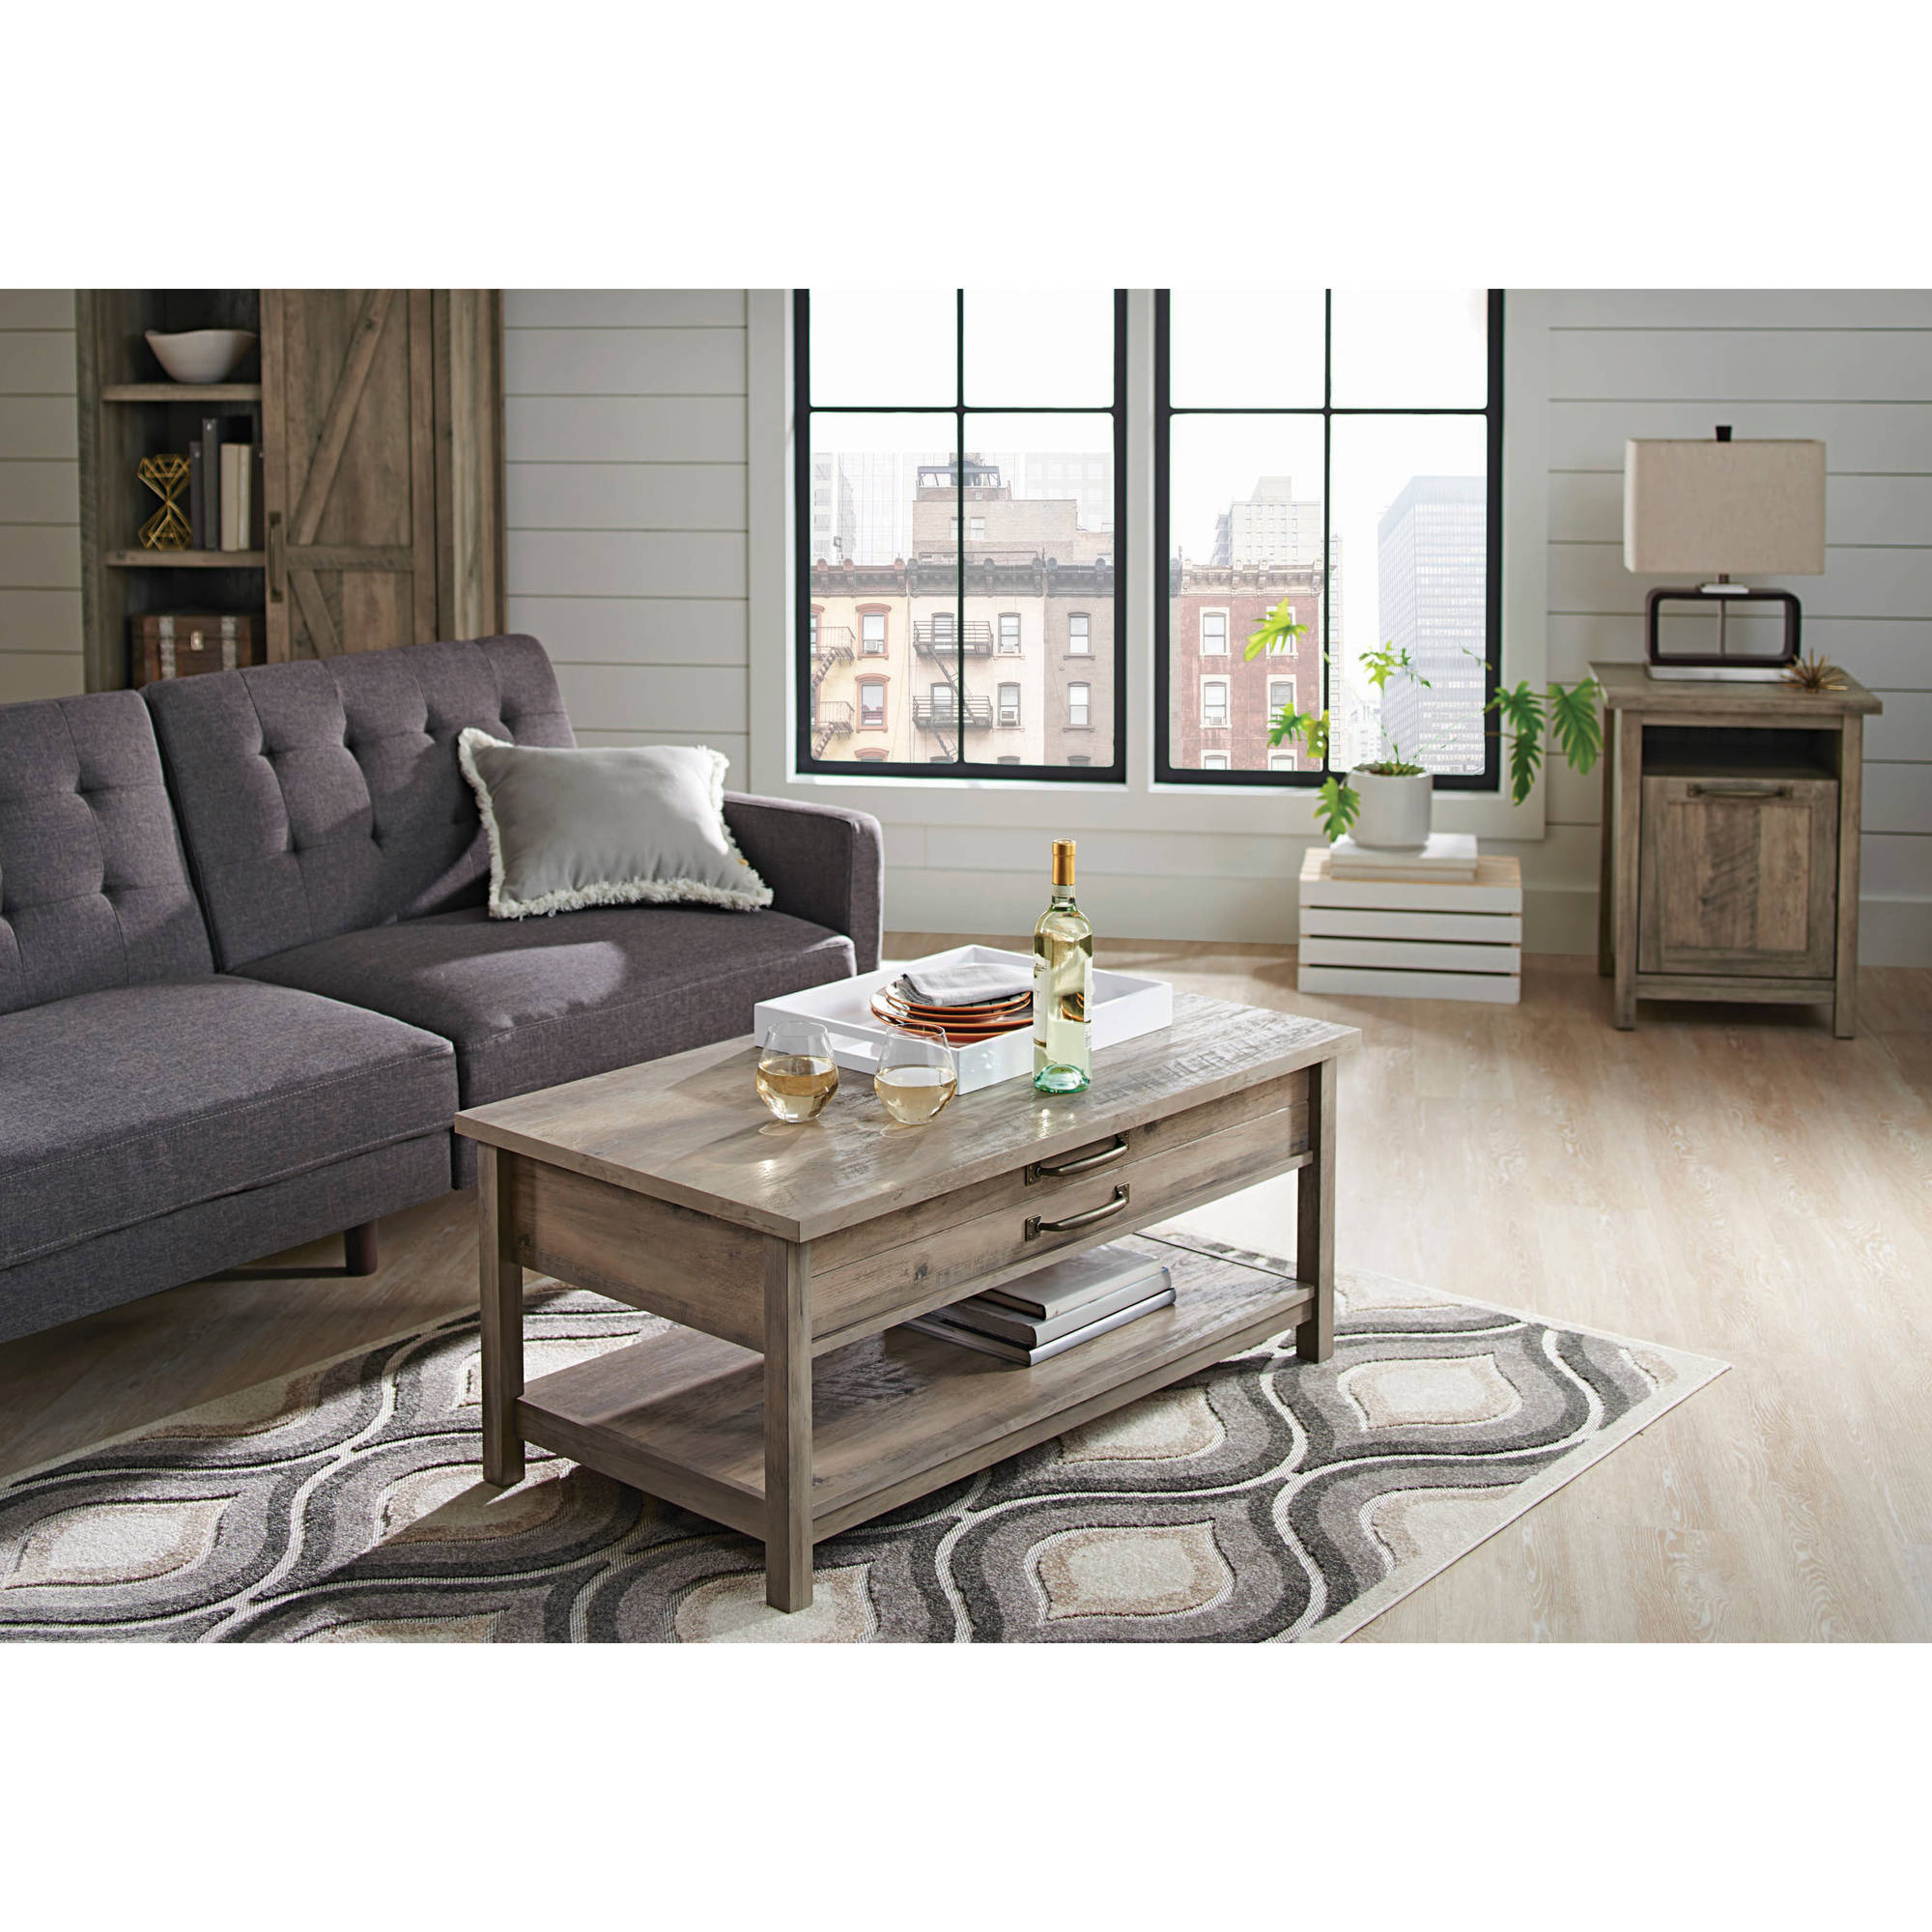 Better Homes U0026 Gardens Modern Farmhouse Lift Top Coffee Table, Rustic Gray  Finish